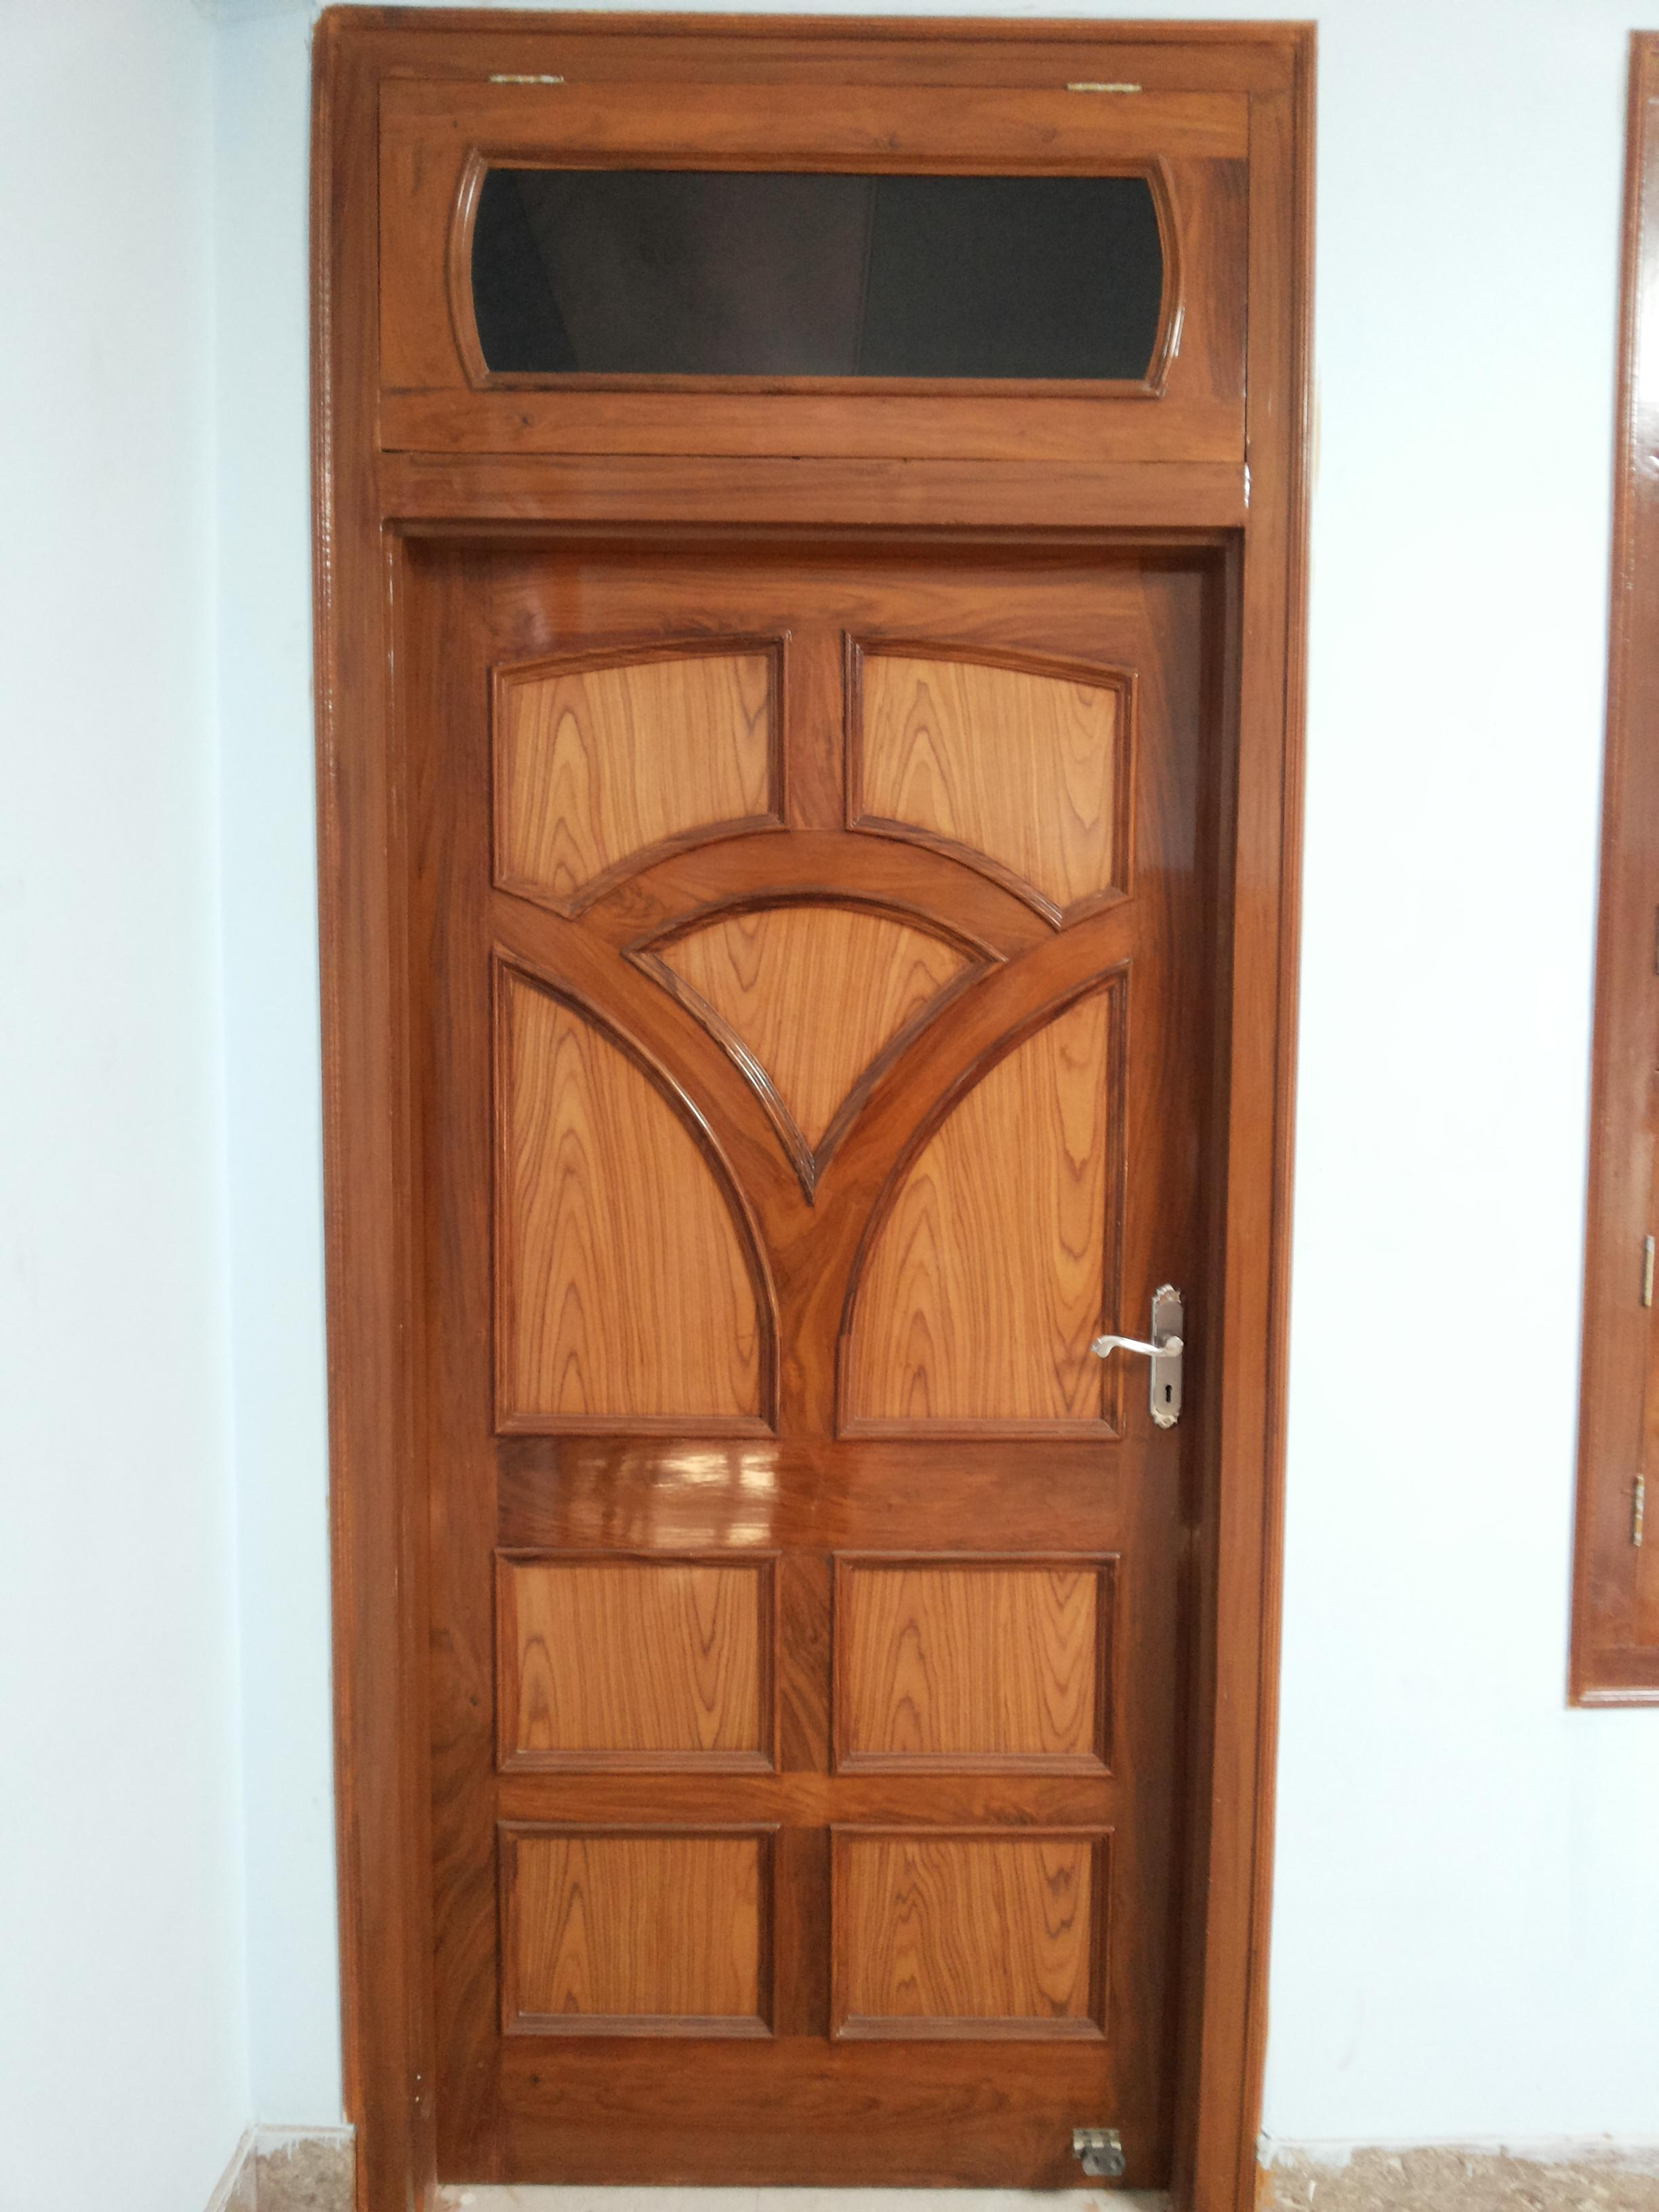 Single panel interior wood door design gharexpert for Door design picture